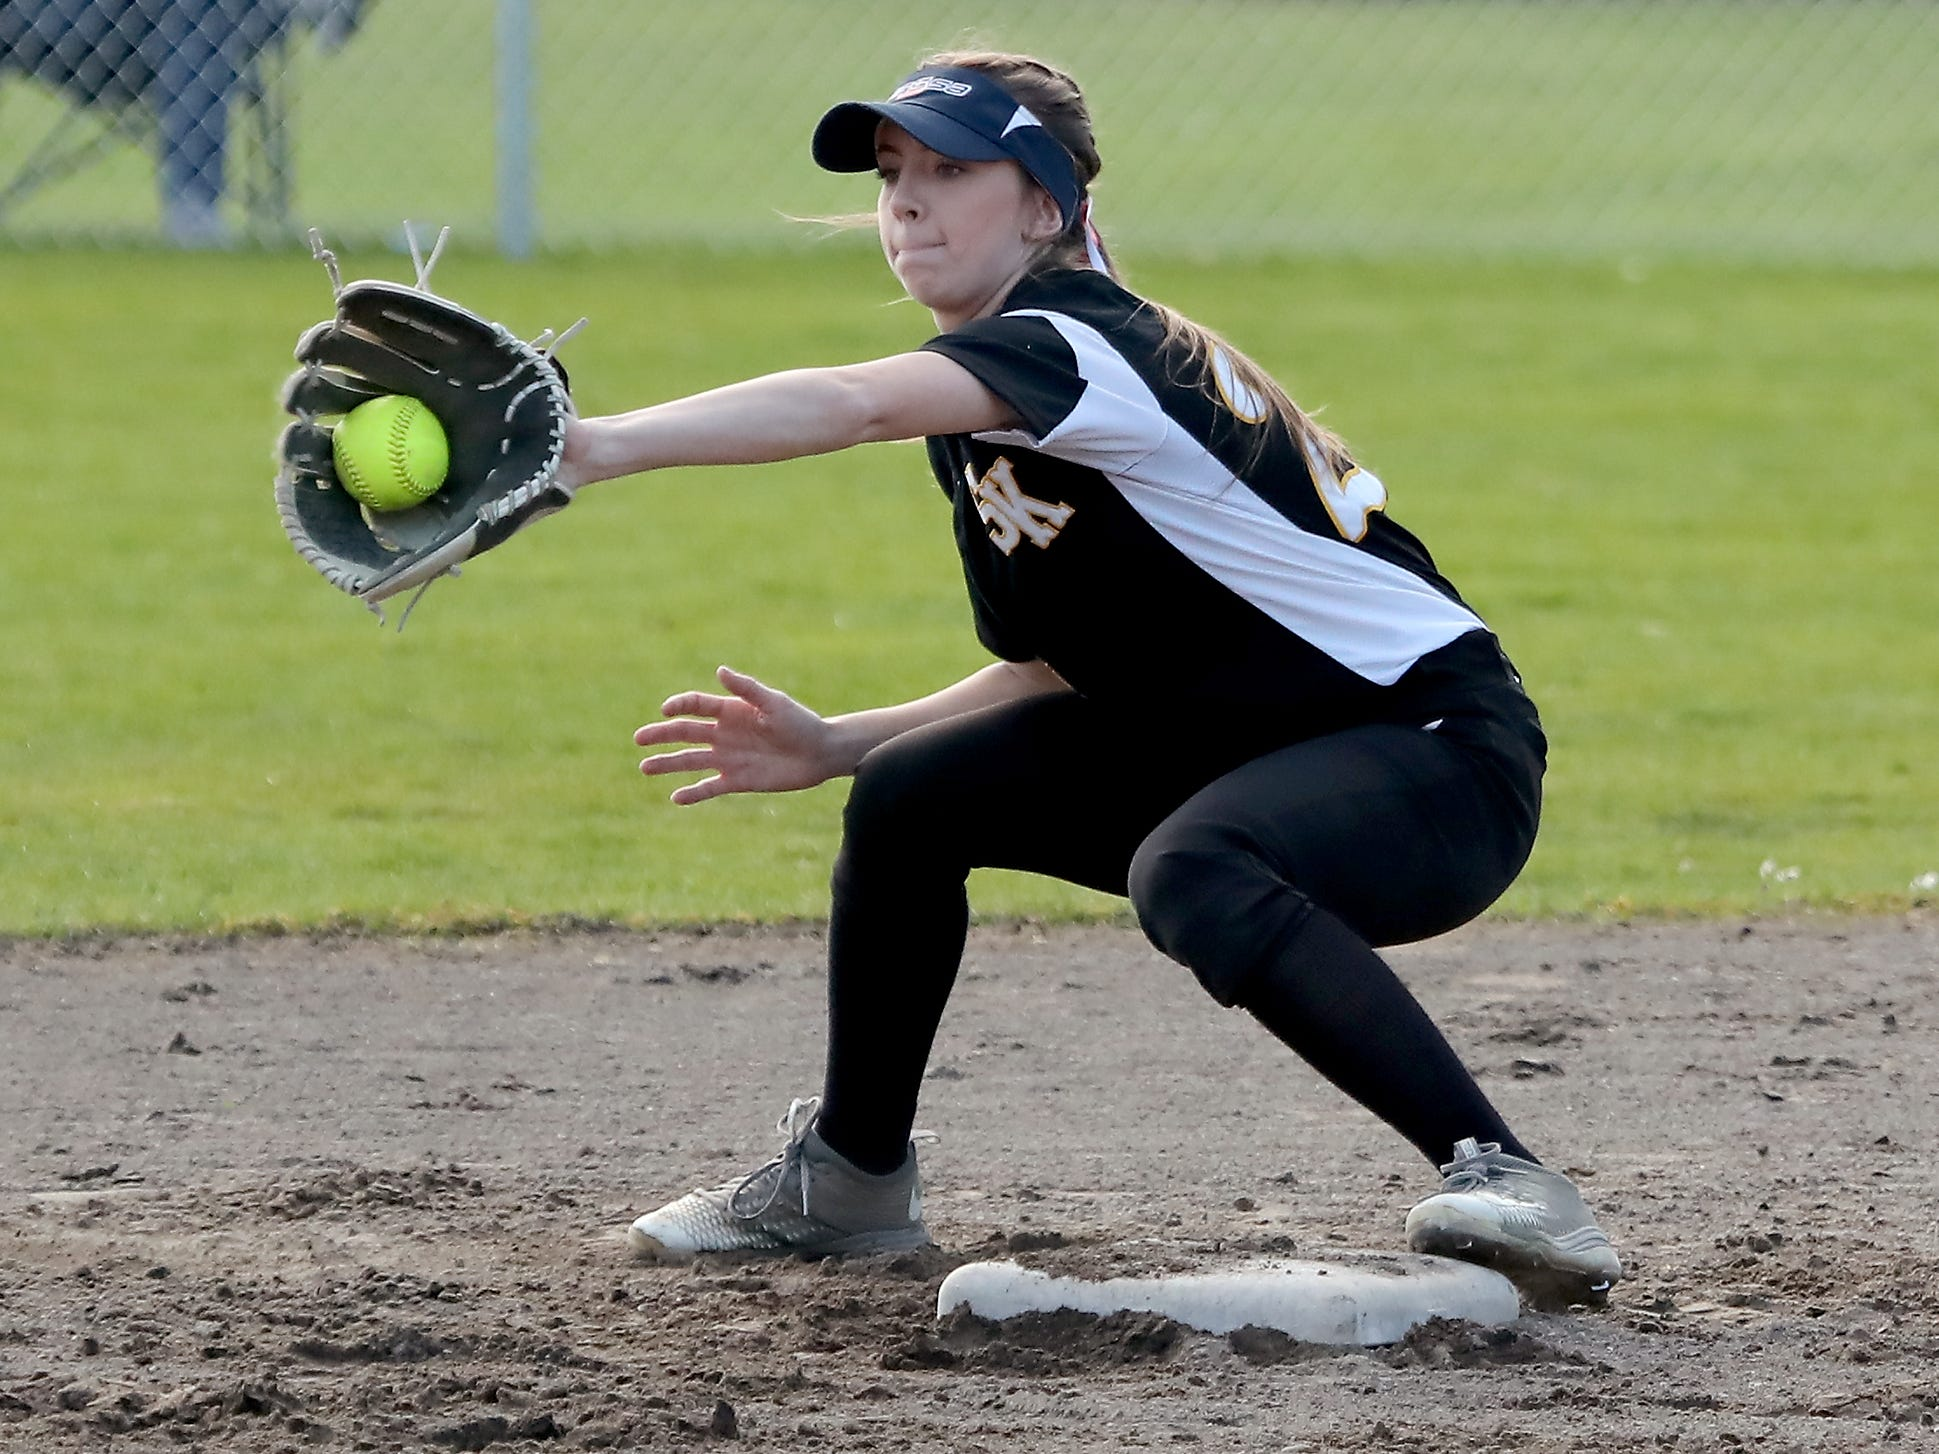 South Kitsap's Teanna Lathum makes a catch at second against Puyallup on Tuesday, March 26, 2019.